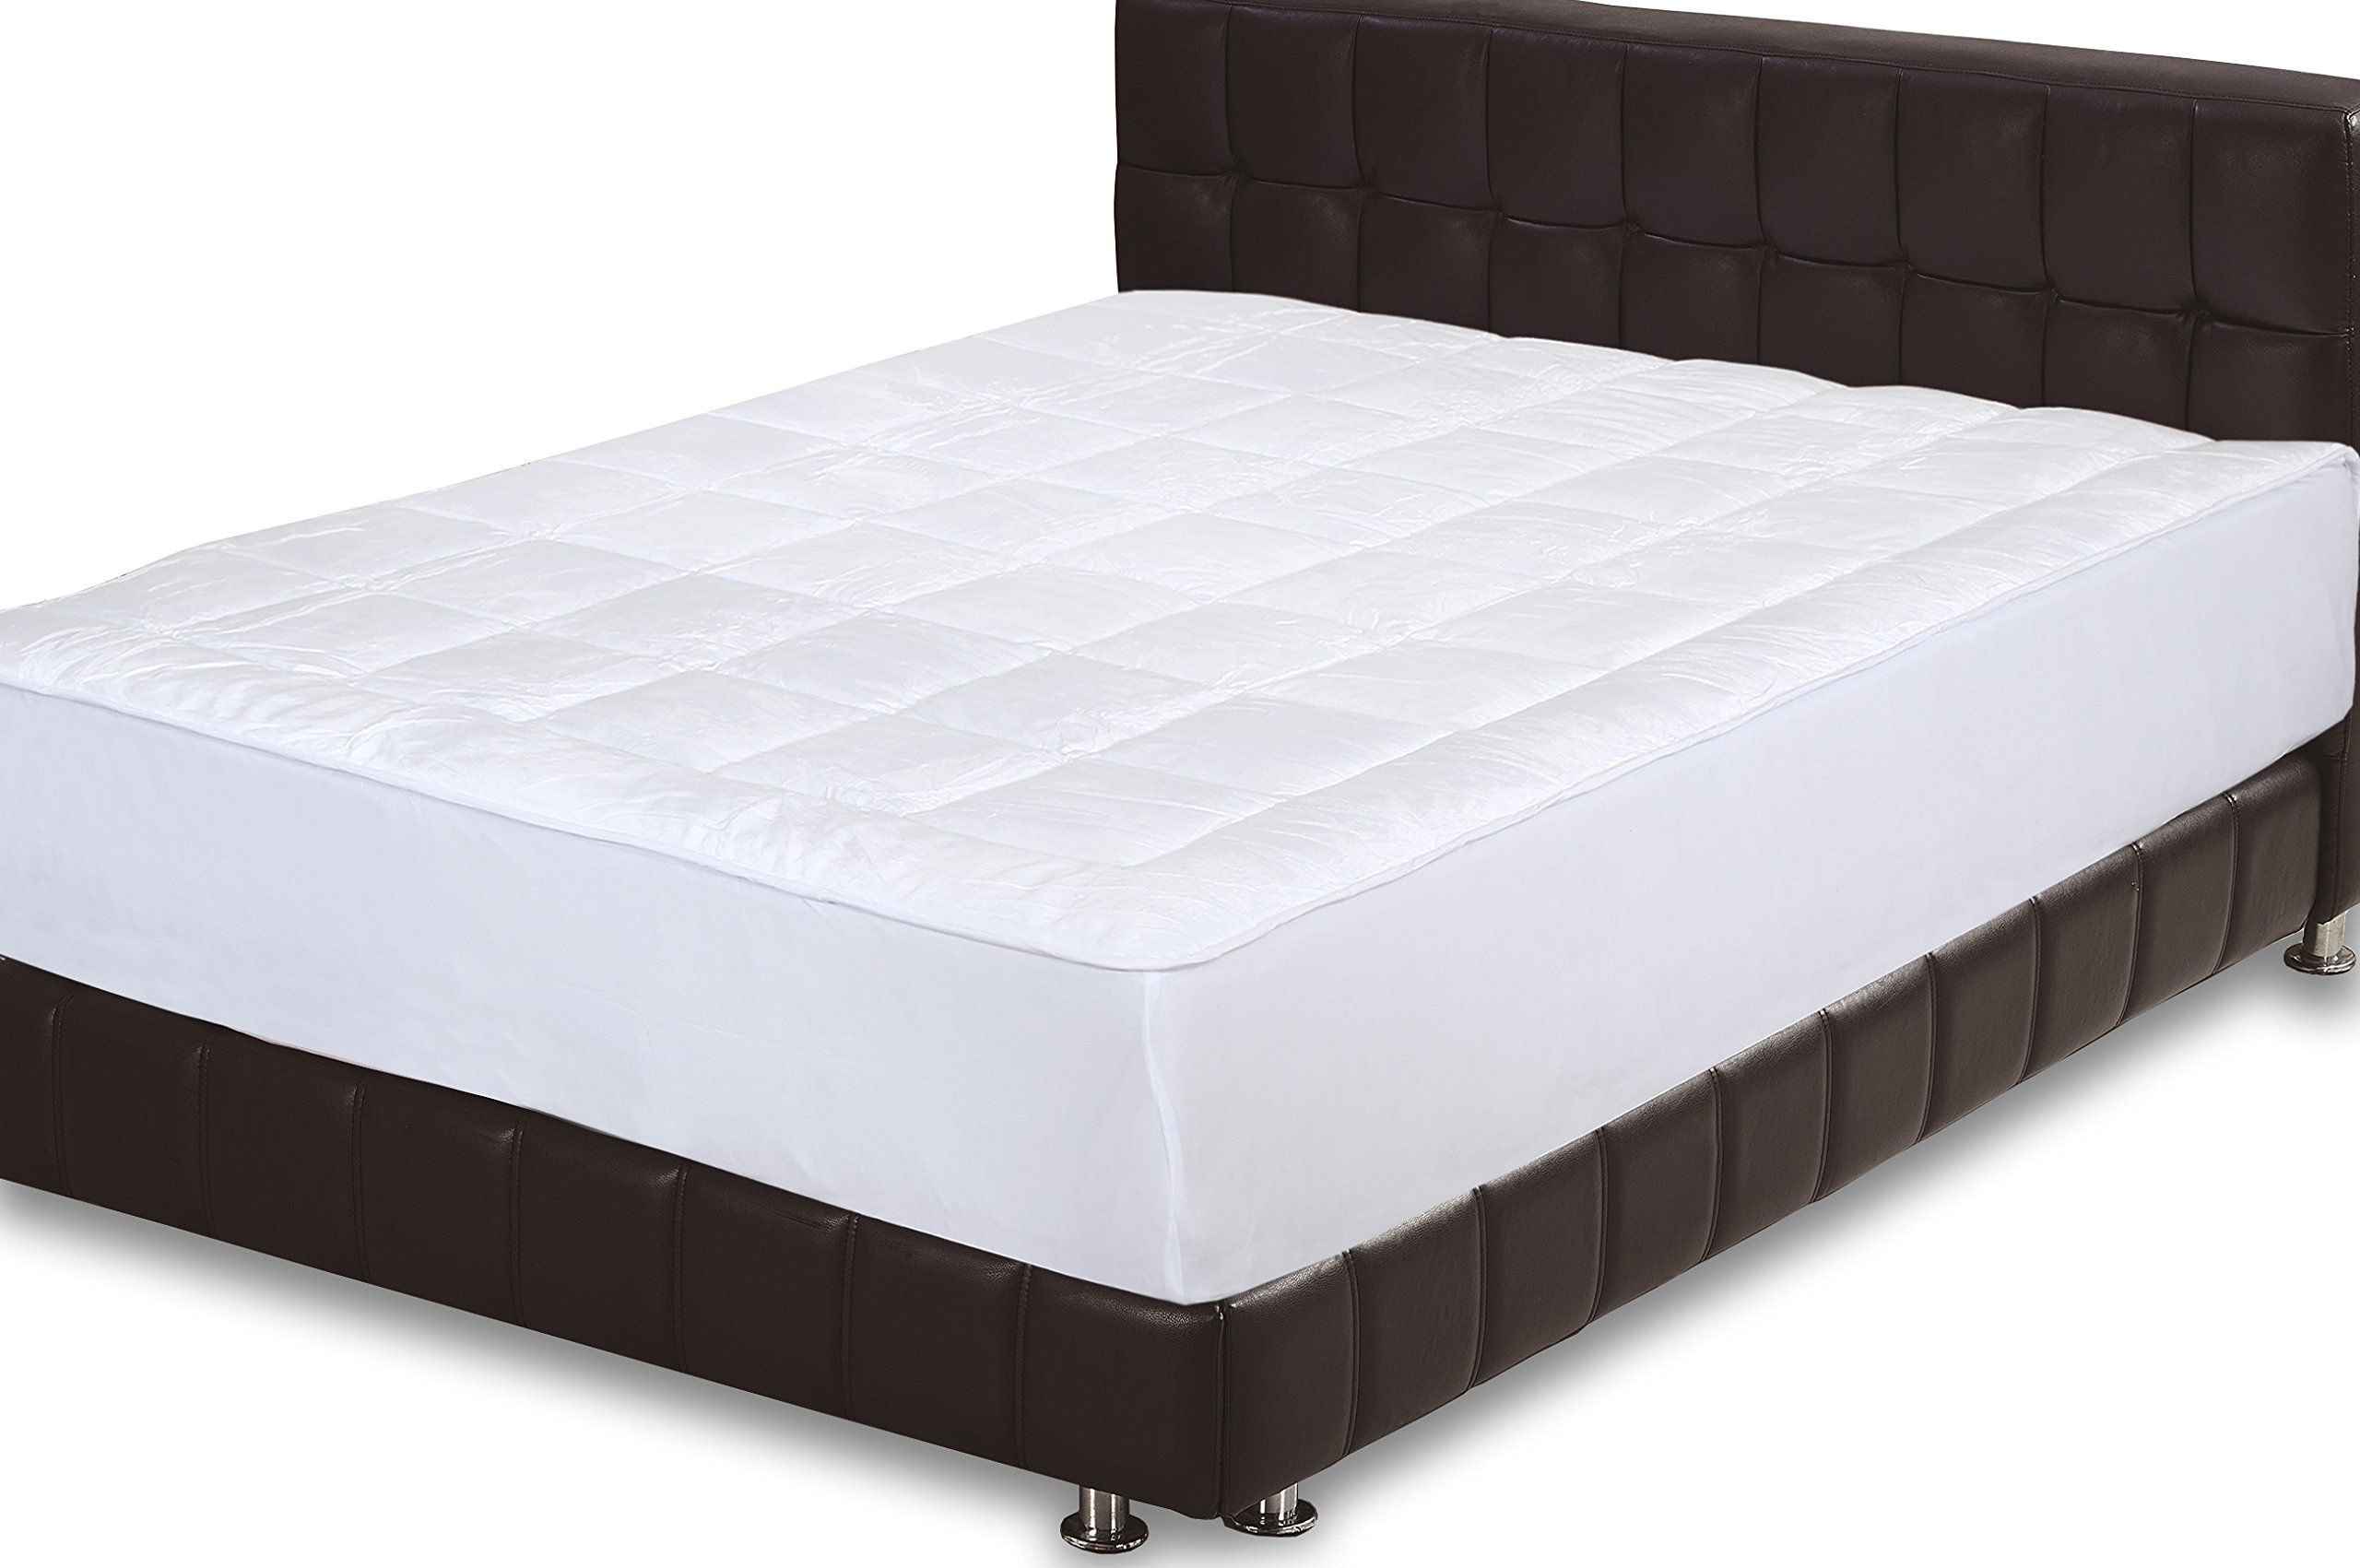 Plush Mattress Pad Covers